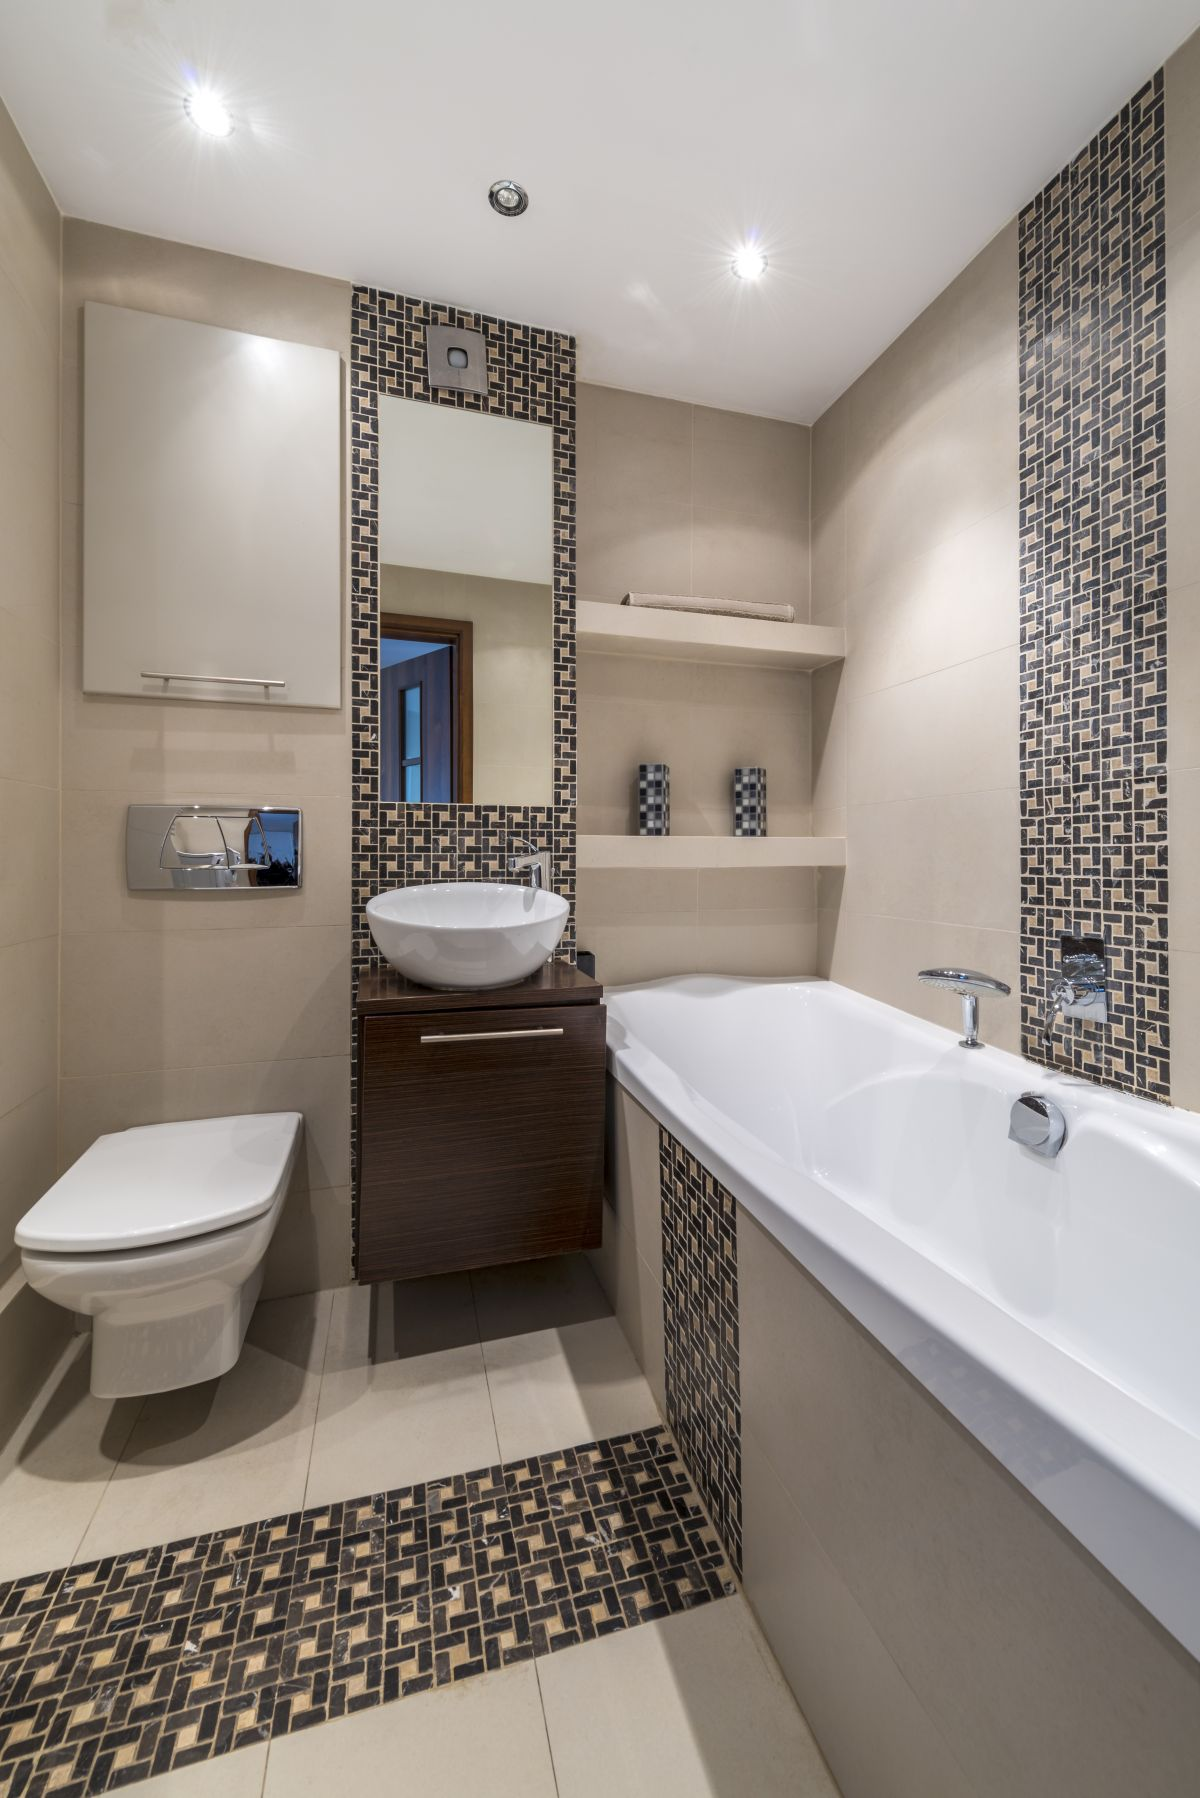 Size Matters? Bathroom Renovation Costs for Your Size Bath on Small Bathroom Remodel  id=78996